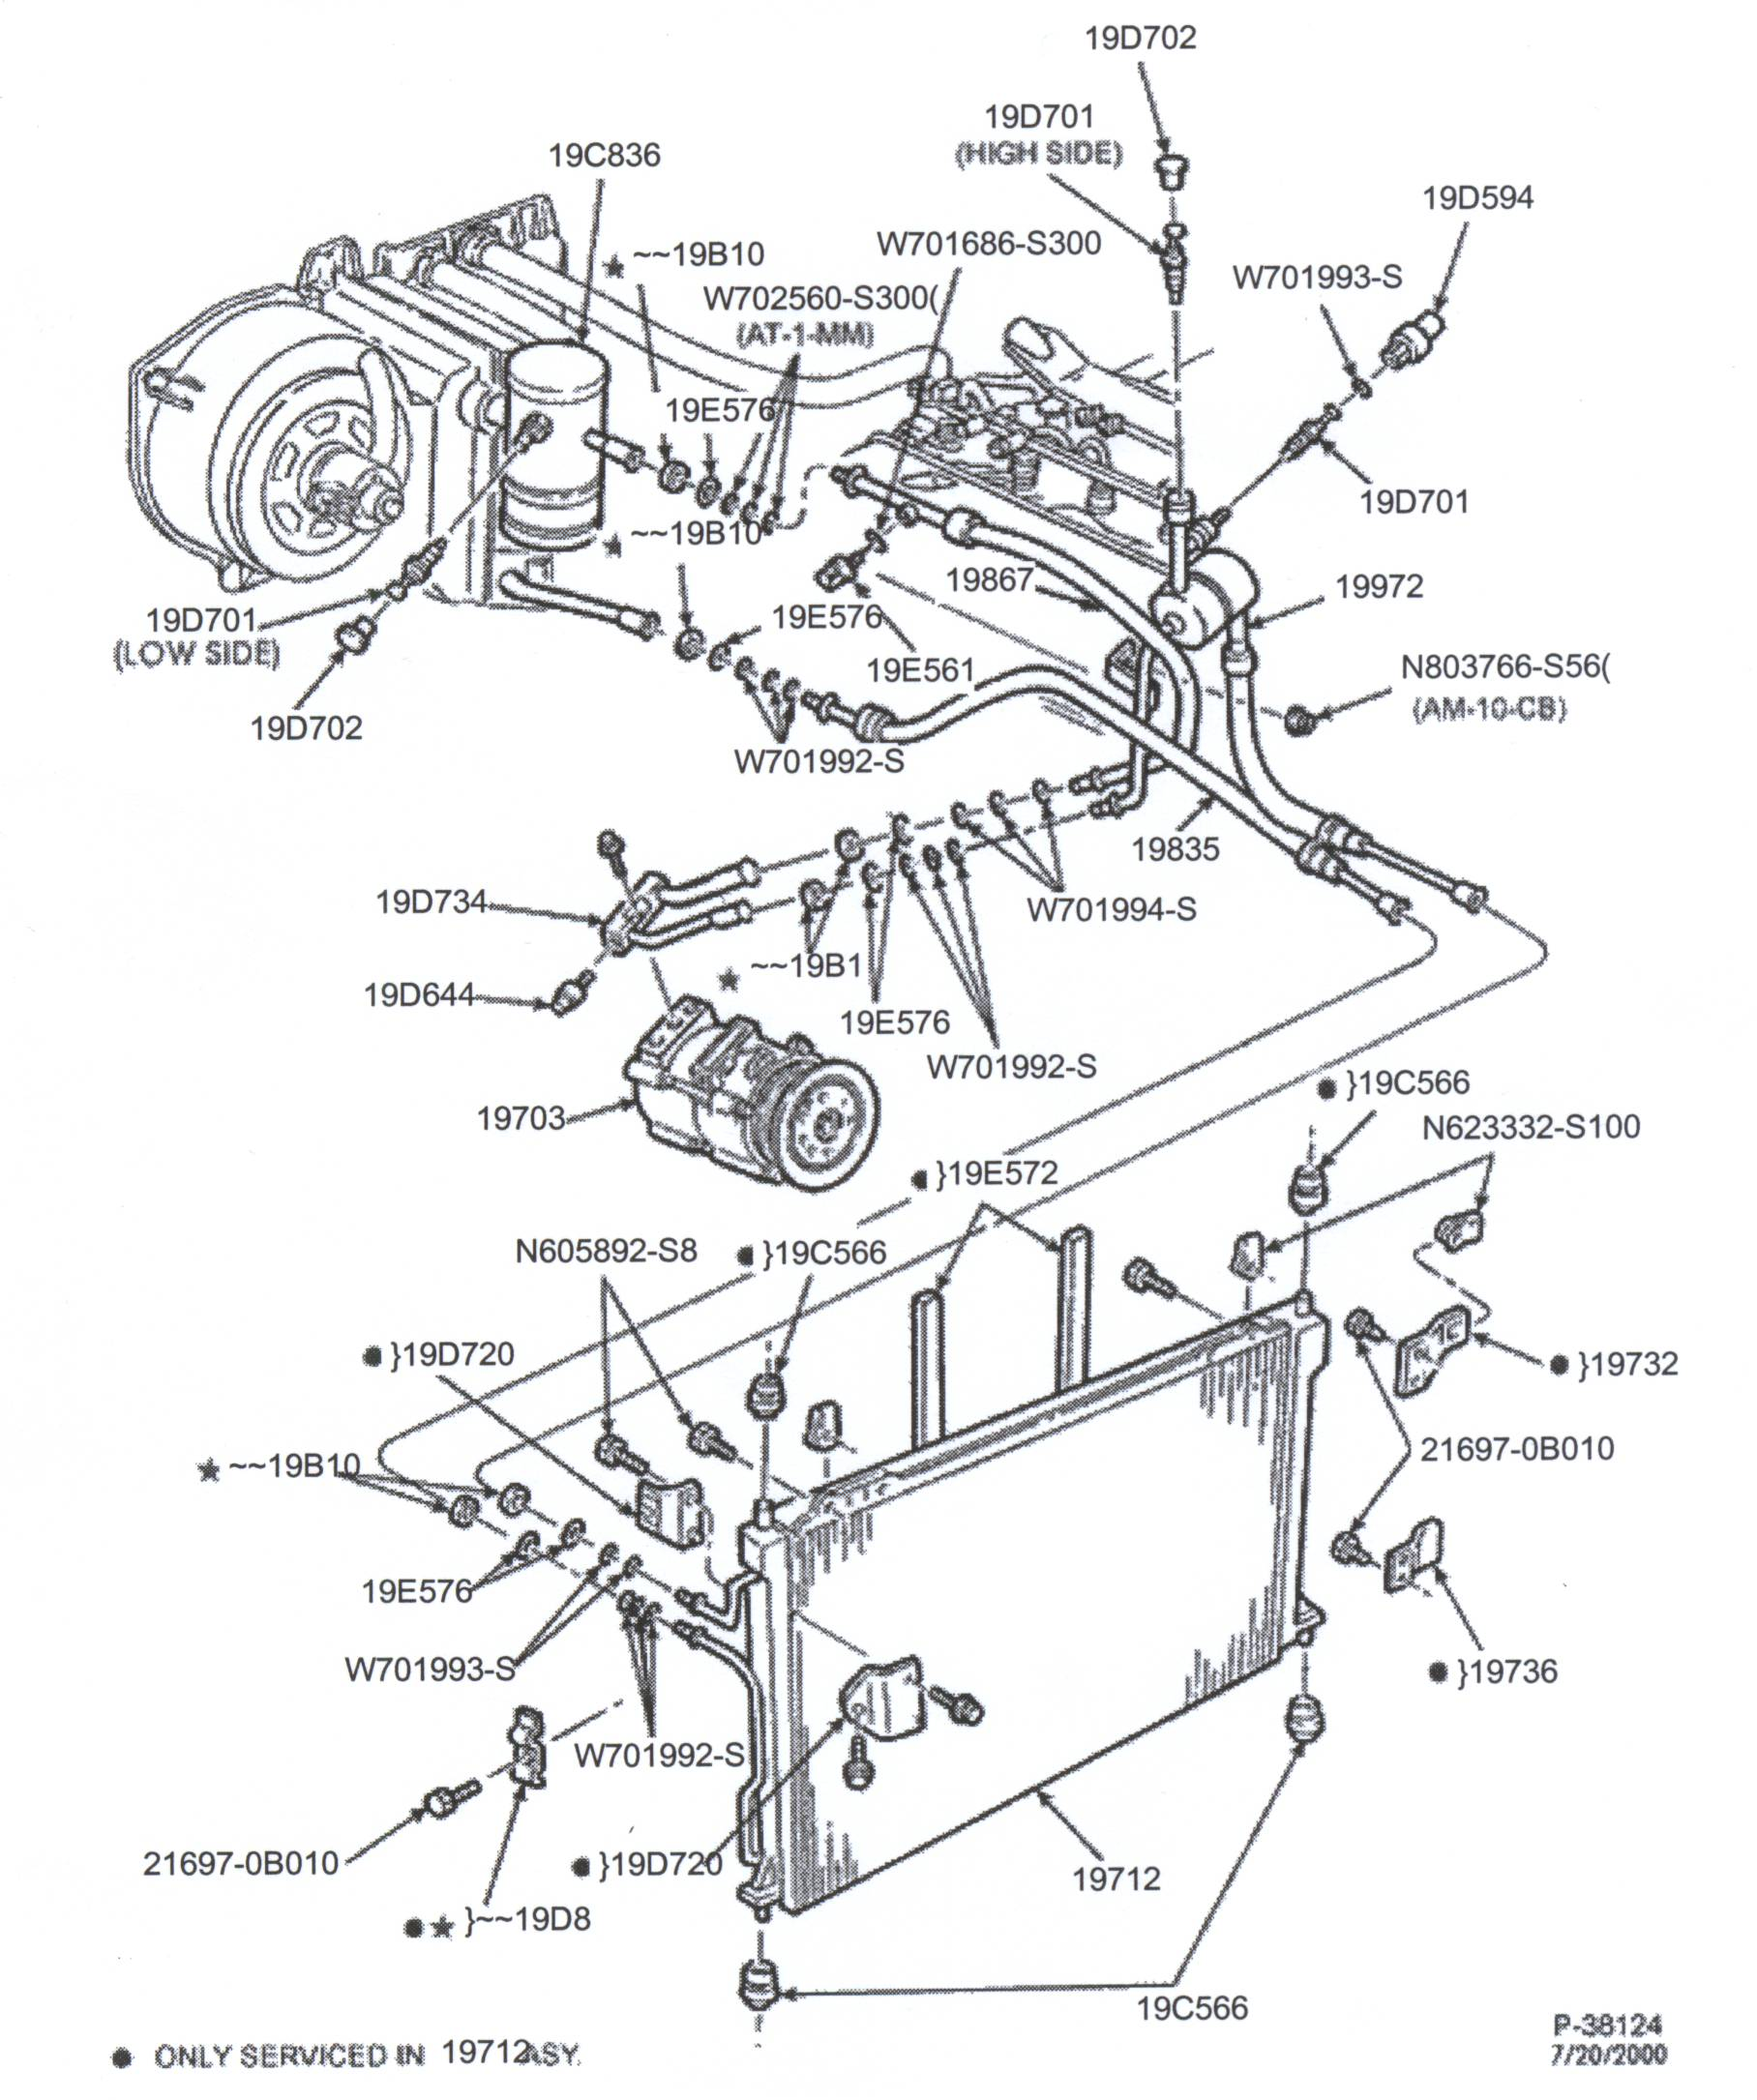 98 Explorer Eatc Wiring Diagram